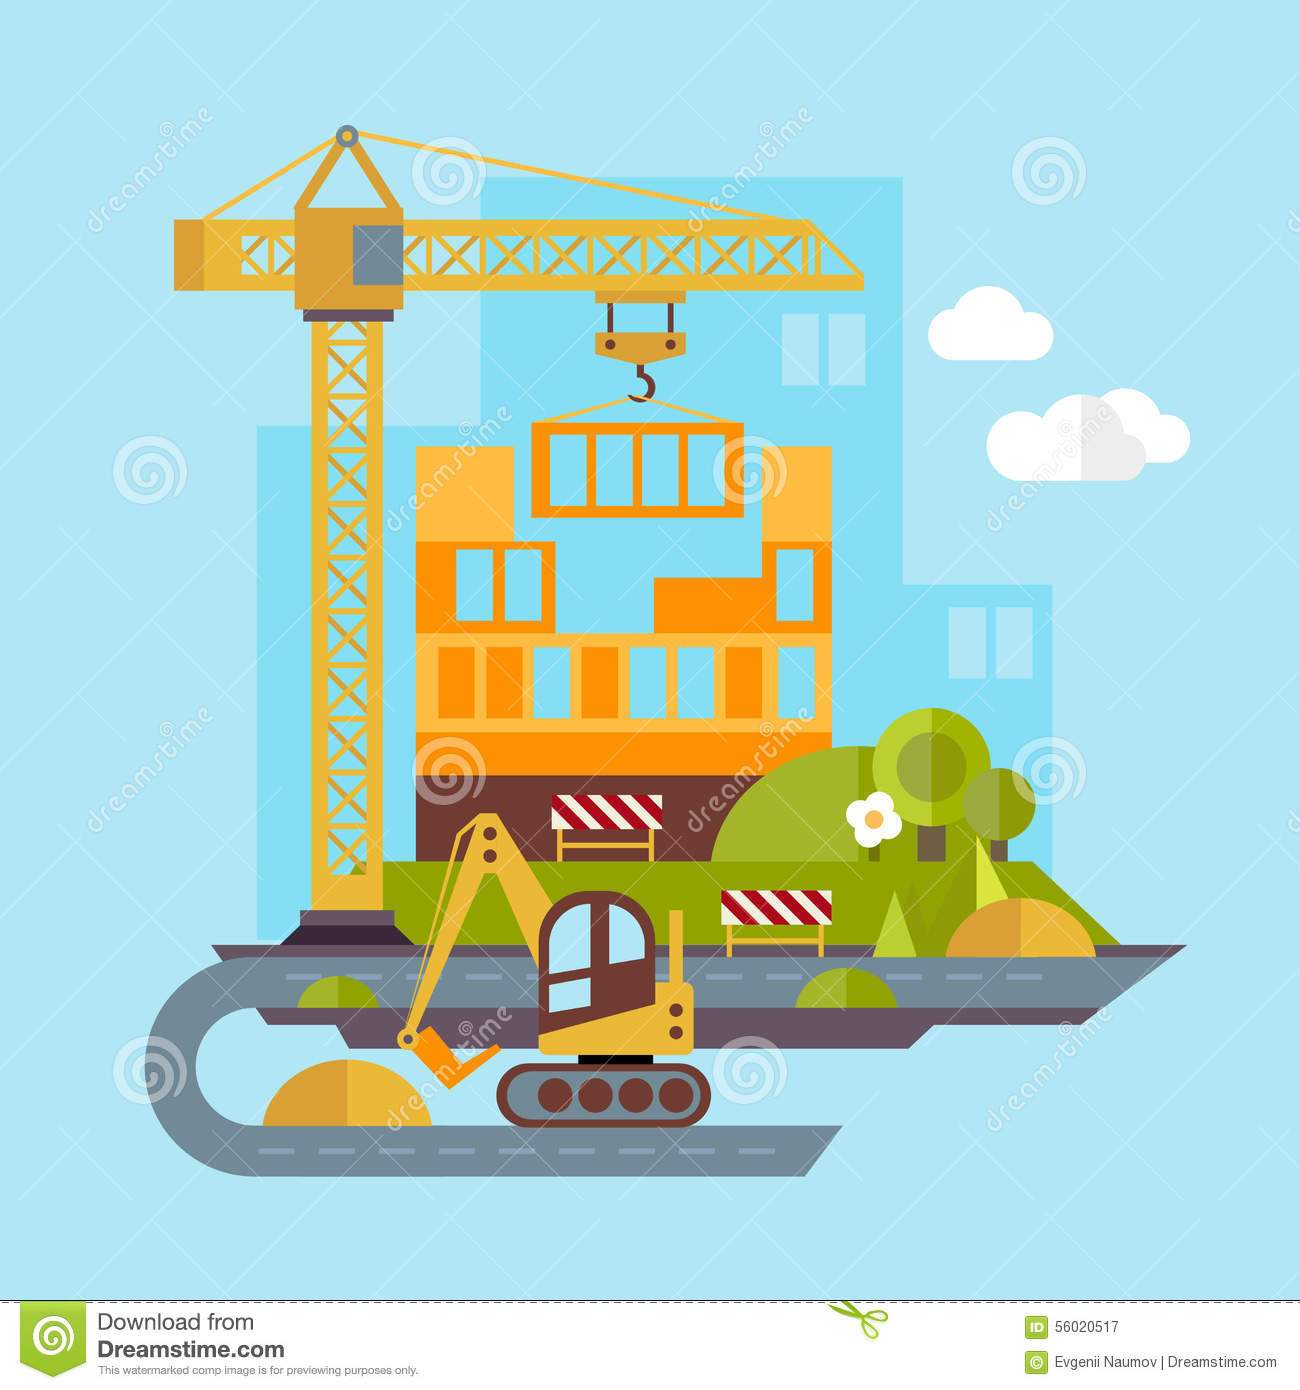 Stock Photography Construction Site Illustration Children Happy Colorful Image31727182 besides Stock Photo Ornament Frame Gold Plated Vintage Floral Victorian Style Image41785275 further Stock Photo White Bead Board Image1897900 furthermore Royalty Free Stock Images Contemporary Piece En Suite Bathroom Three Ensuite Shower Cubicle Mosaic Tiles Image38483189 additionally Stock Photo Wood Plank White Texture Background. on panel house plans and prices